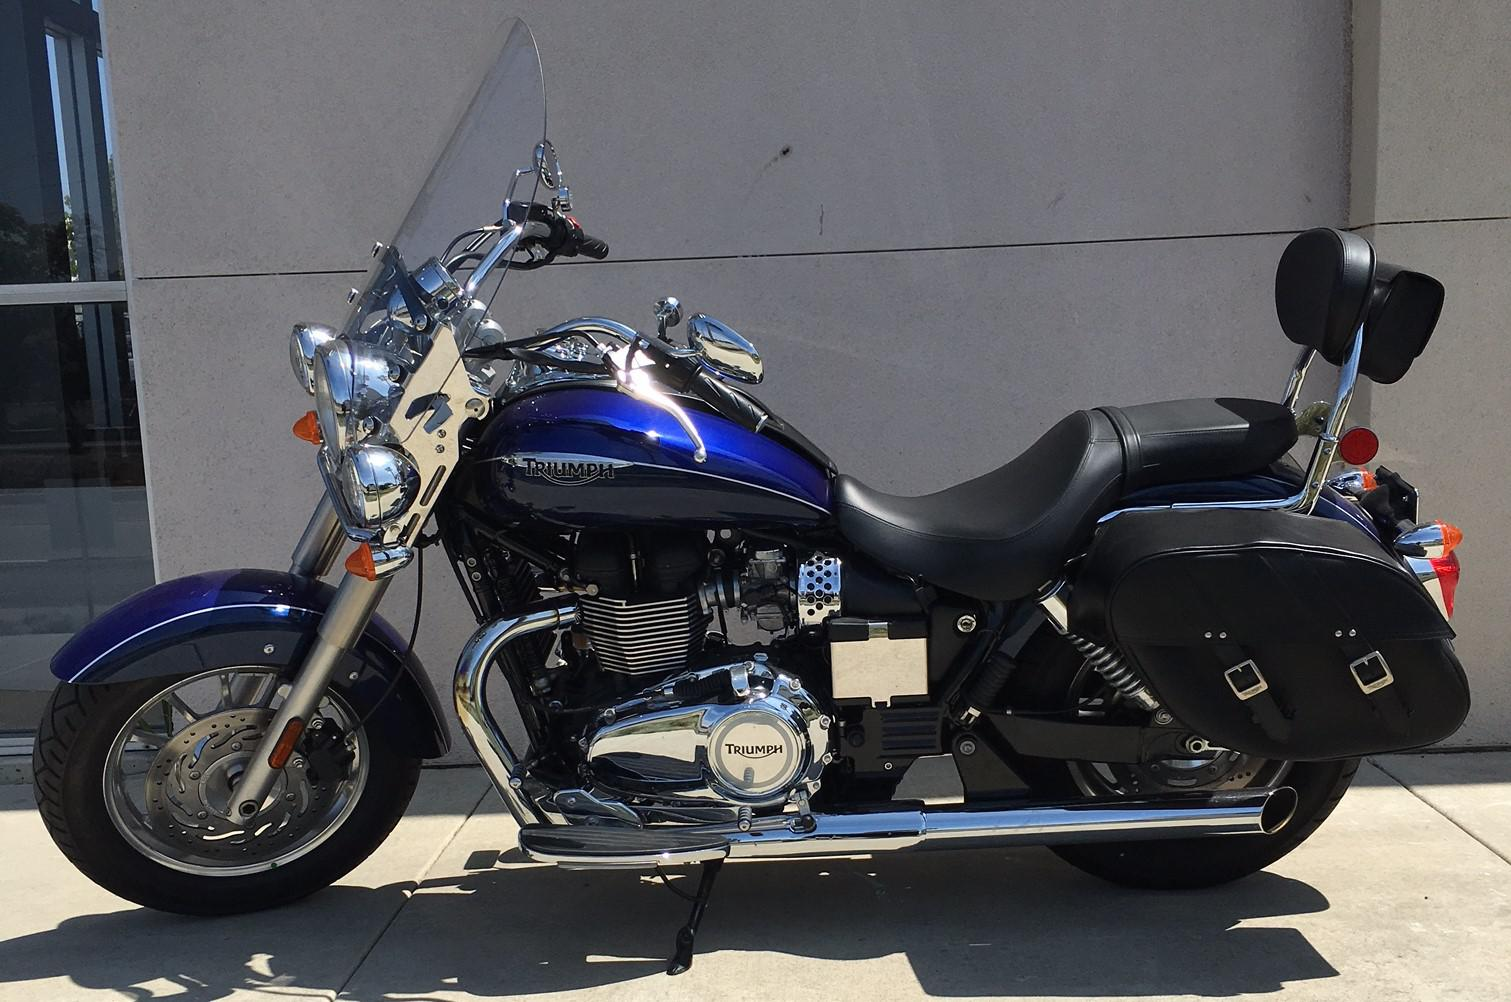 2016 triumph america lt for sale in ventura, ca. cal coast